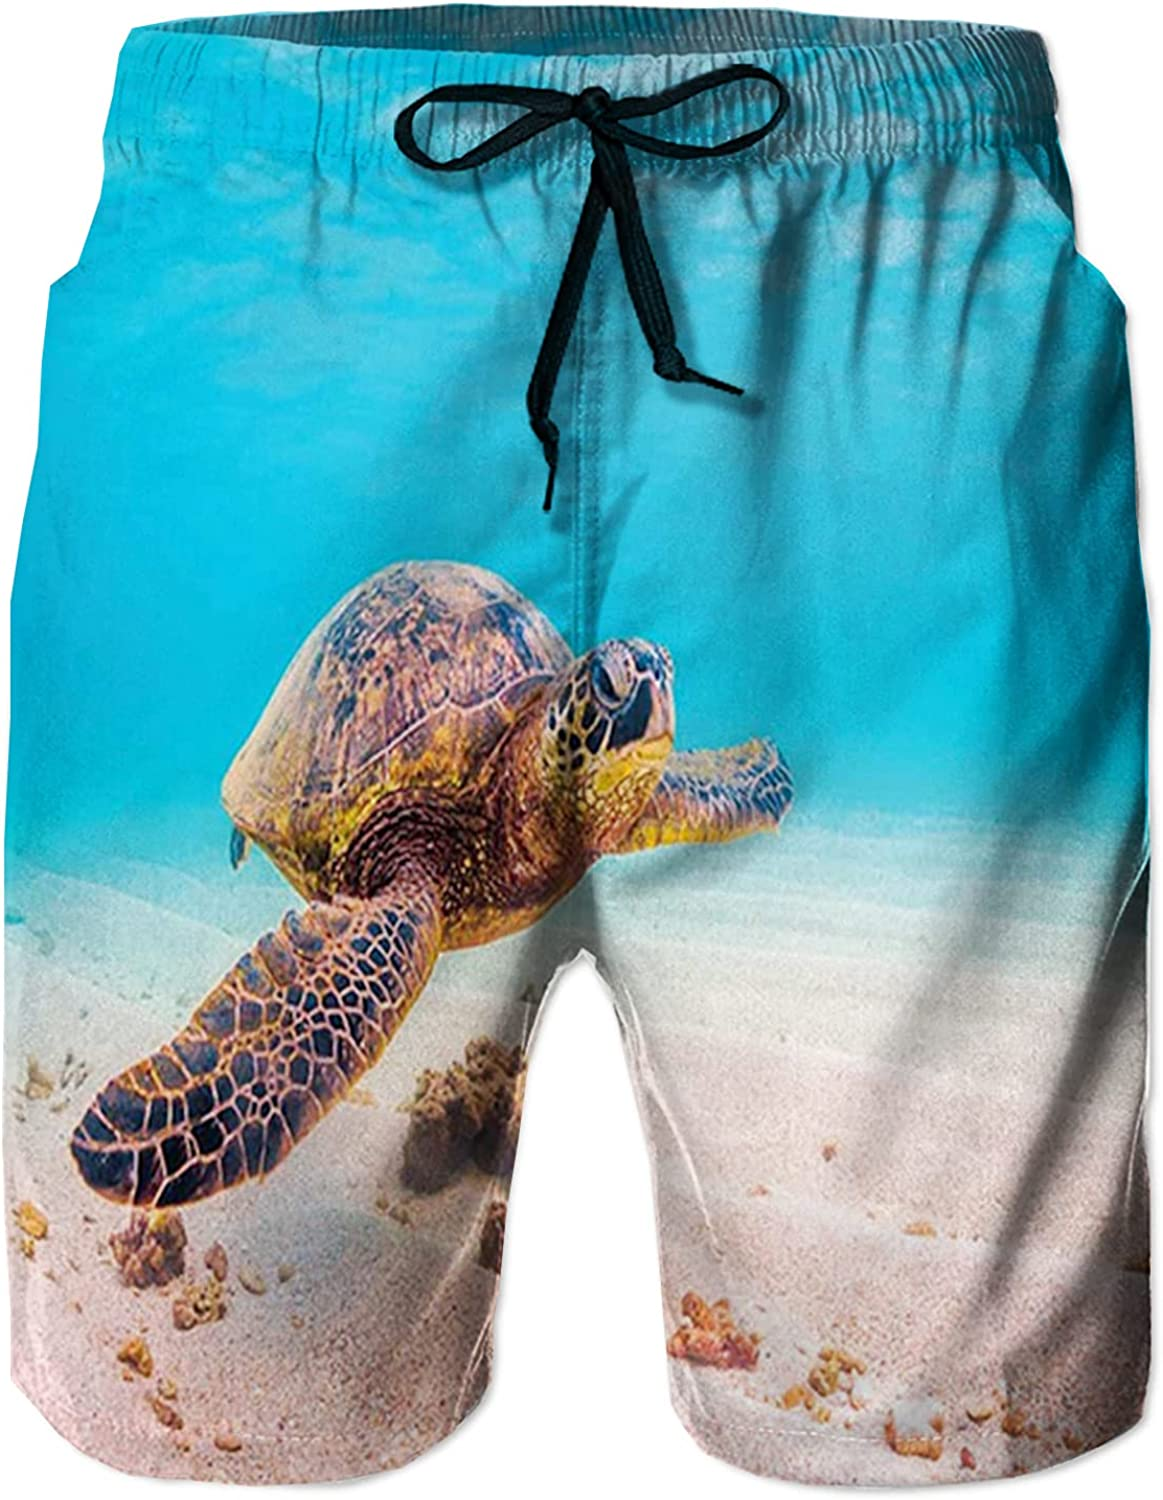 Men's Long Swim Trunks with Mesh Lining Beach Bathing Suits Board Shorts Swimwear with Pockets and No Mesh,Hawaiian Green Sea Turtle Cruises in Warm Waters of The Pacific Ocean Photo L